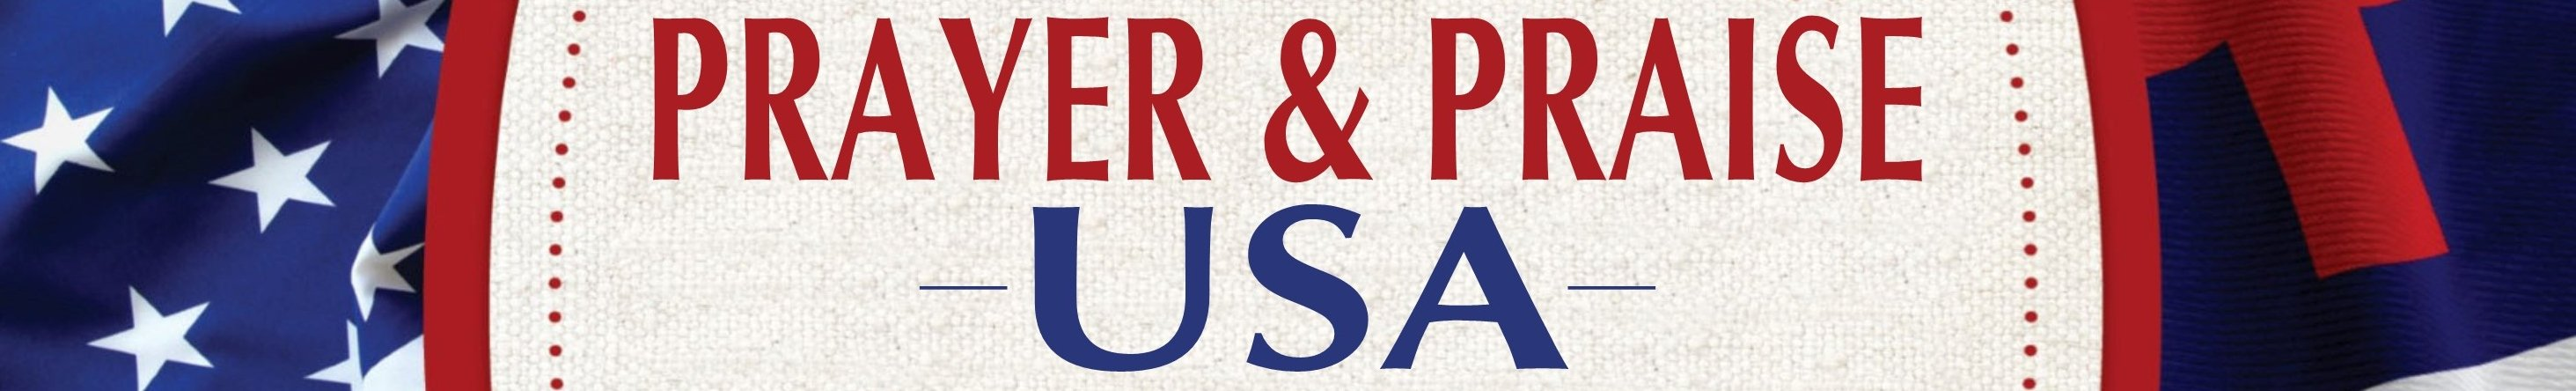 P&P USA Artwork - Banner for Top of Webpages